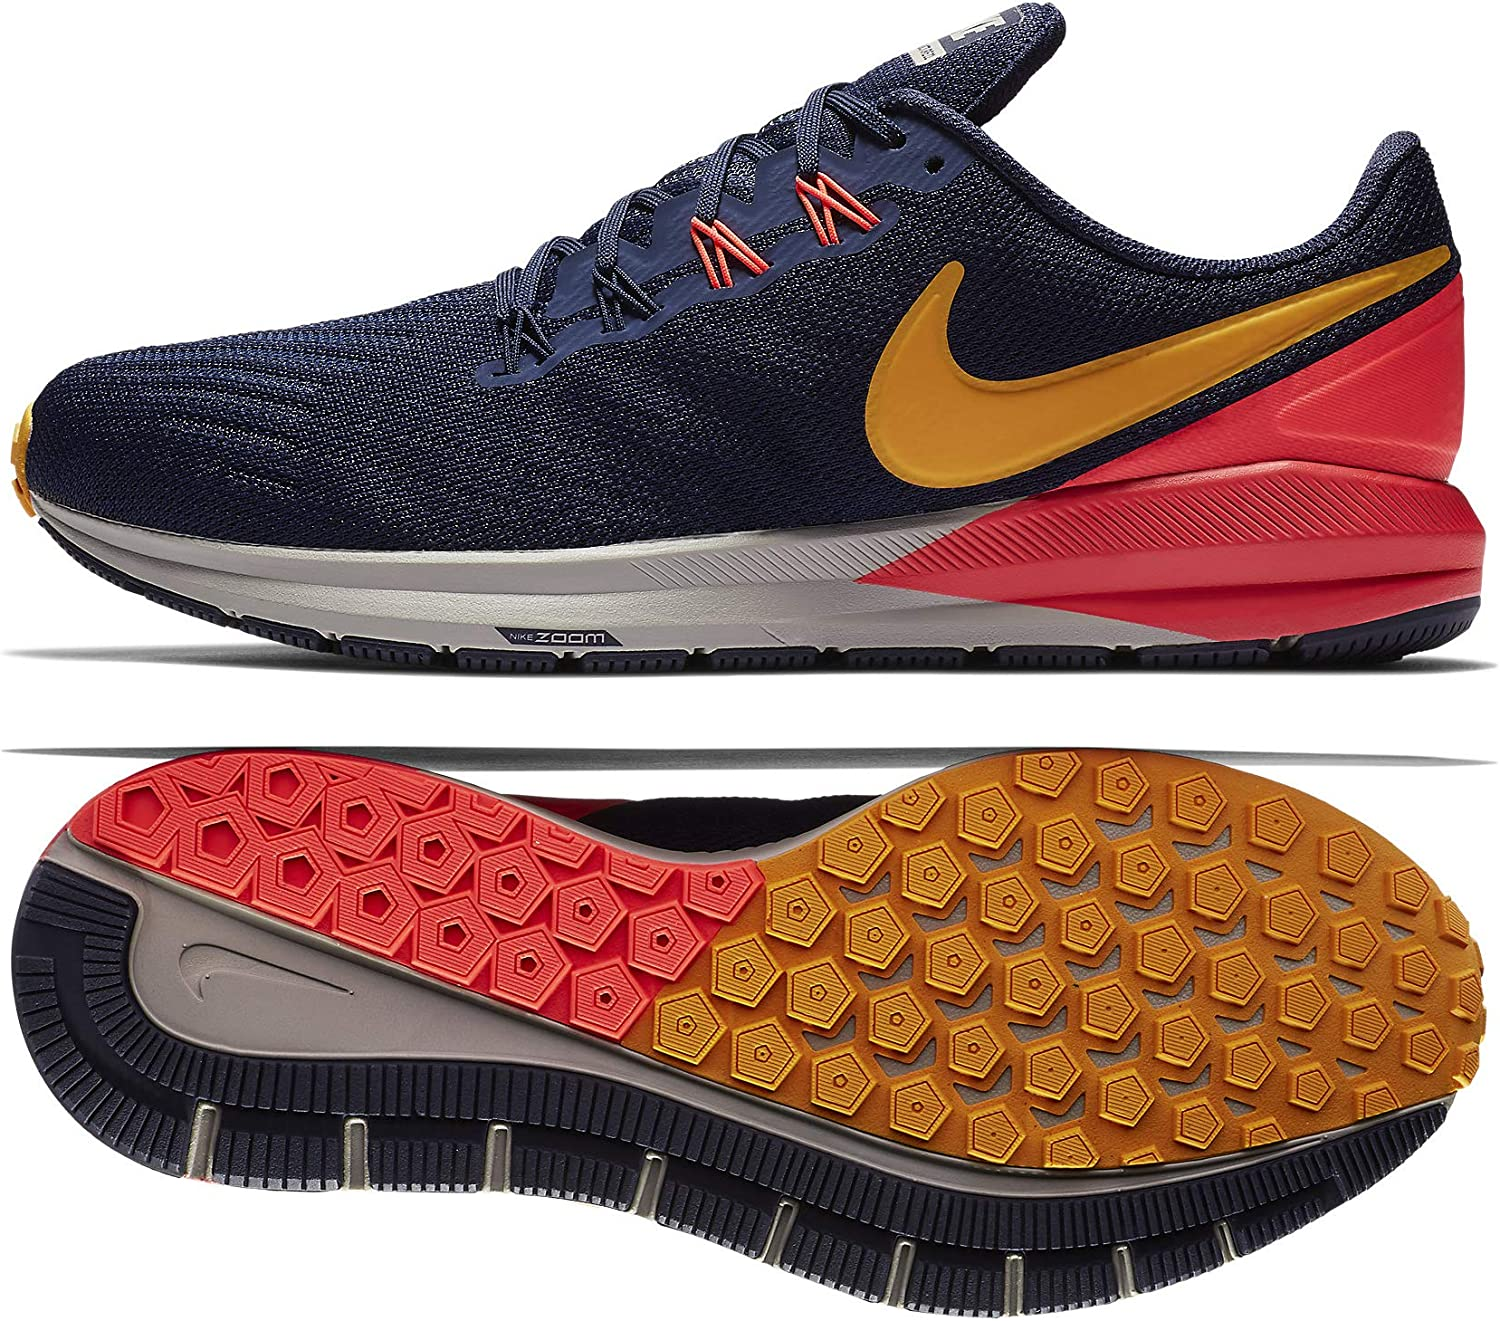 Nike Air Zoom Structure 22 AA1636-400 Blackened Blue Orange Peel Flash Crimson Men s Running Shoes 13